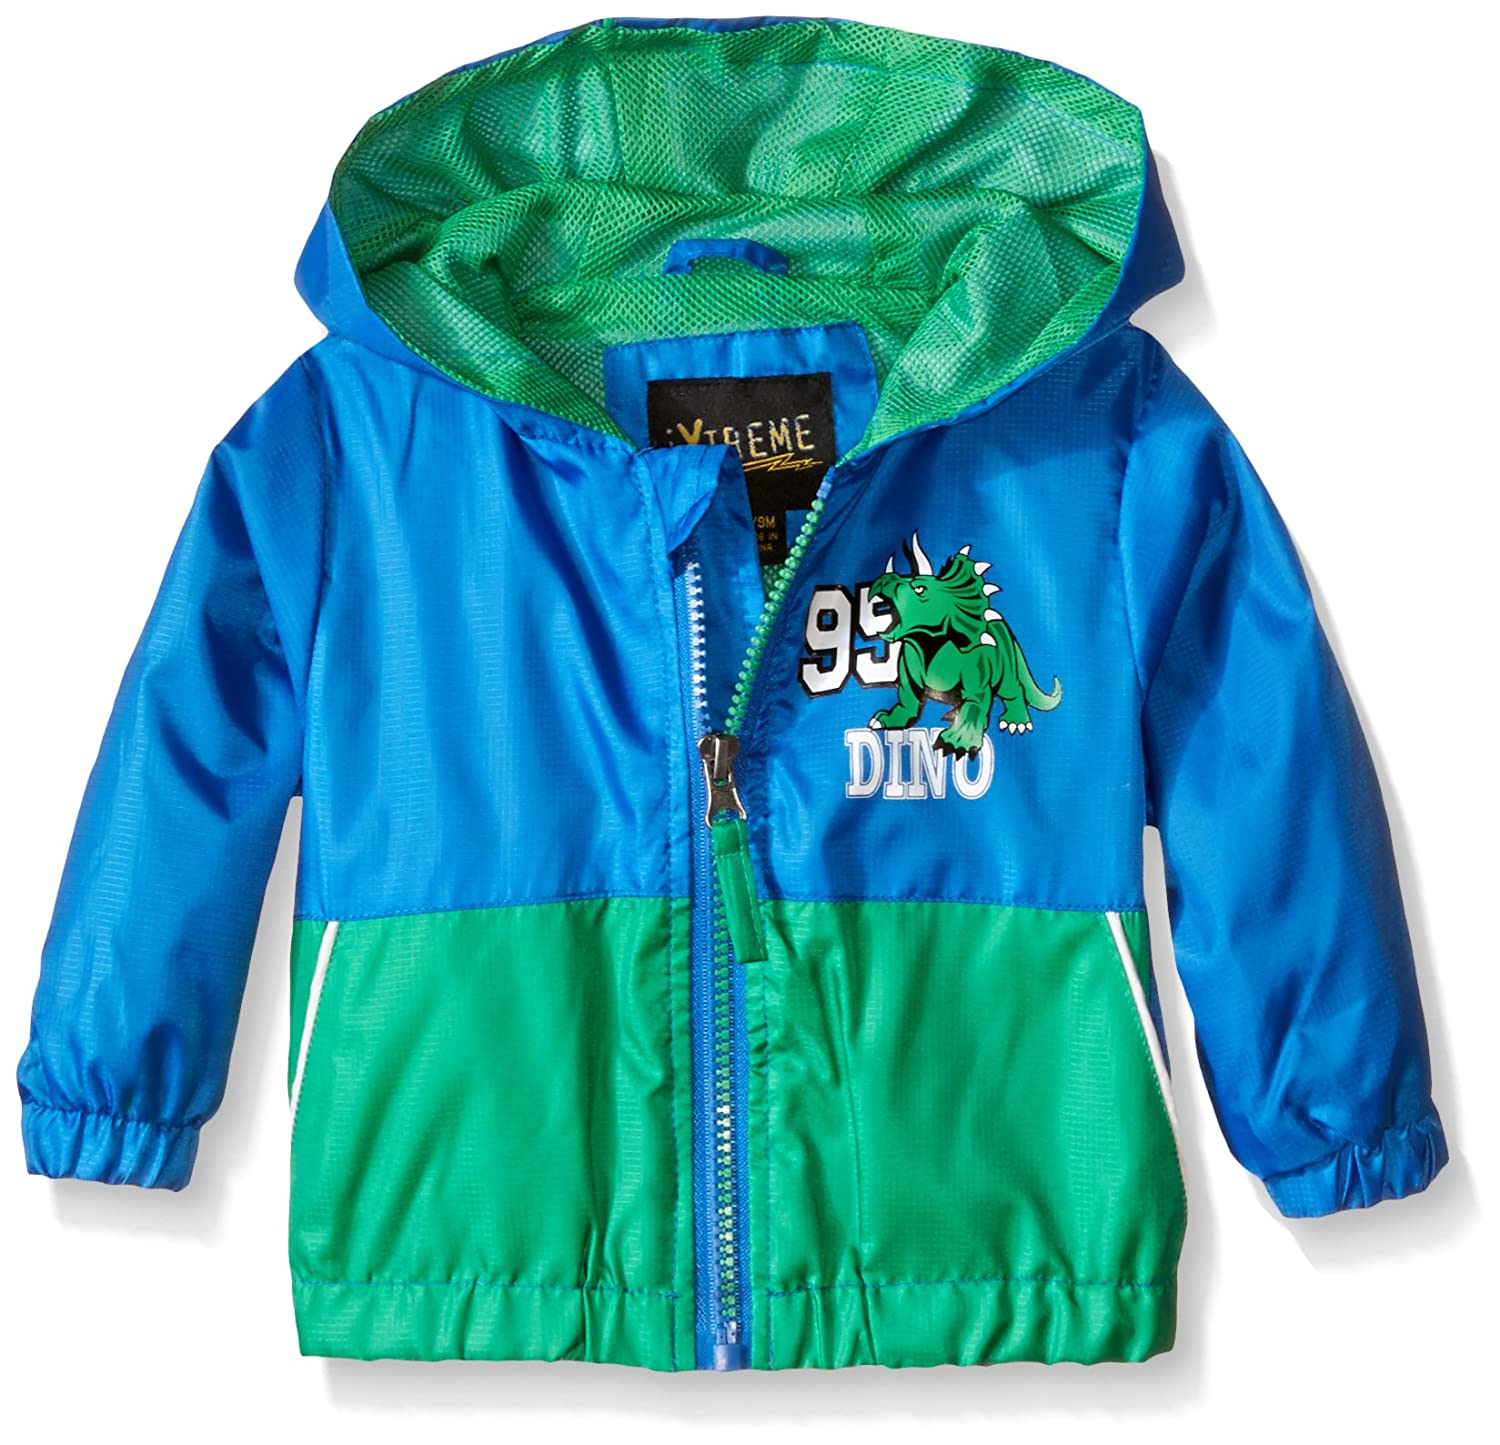 iXTREME Boys' Colorblock Jacket with Dino IX62121